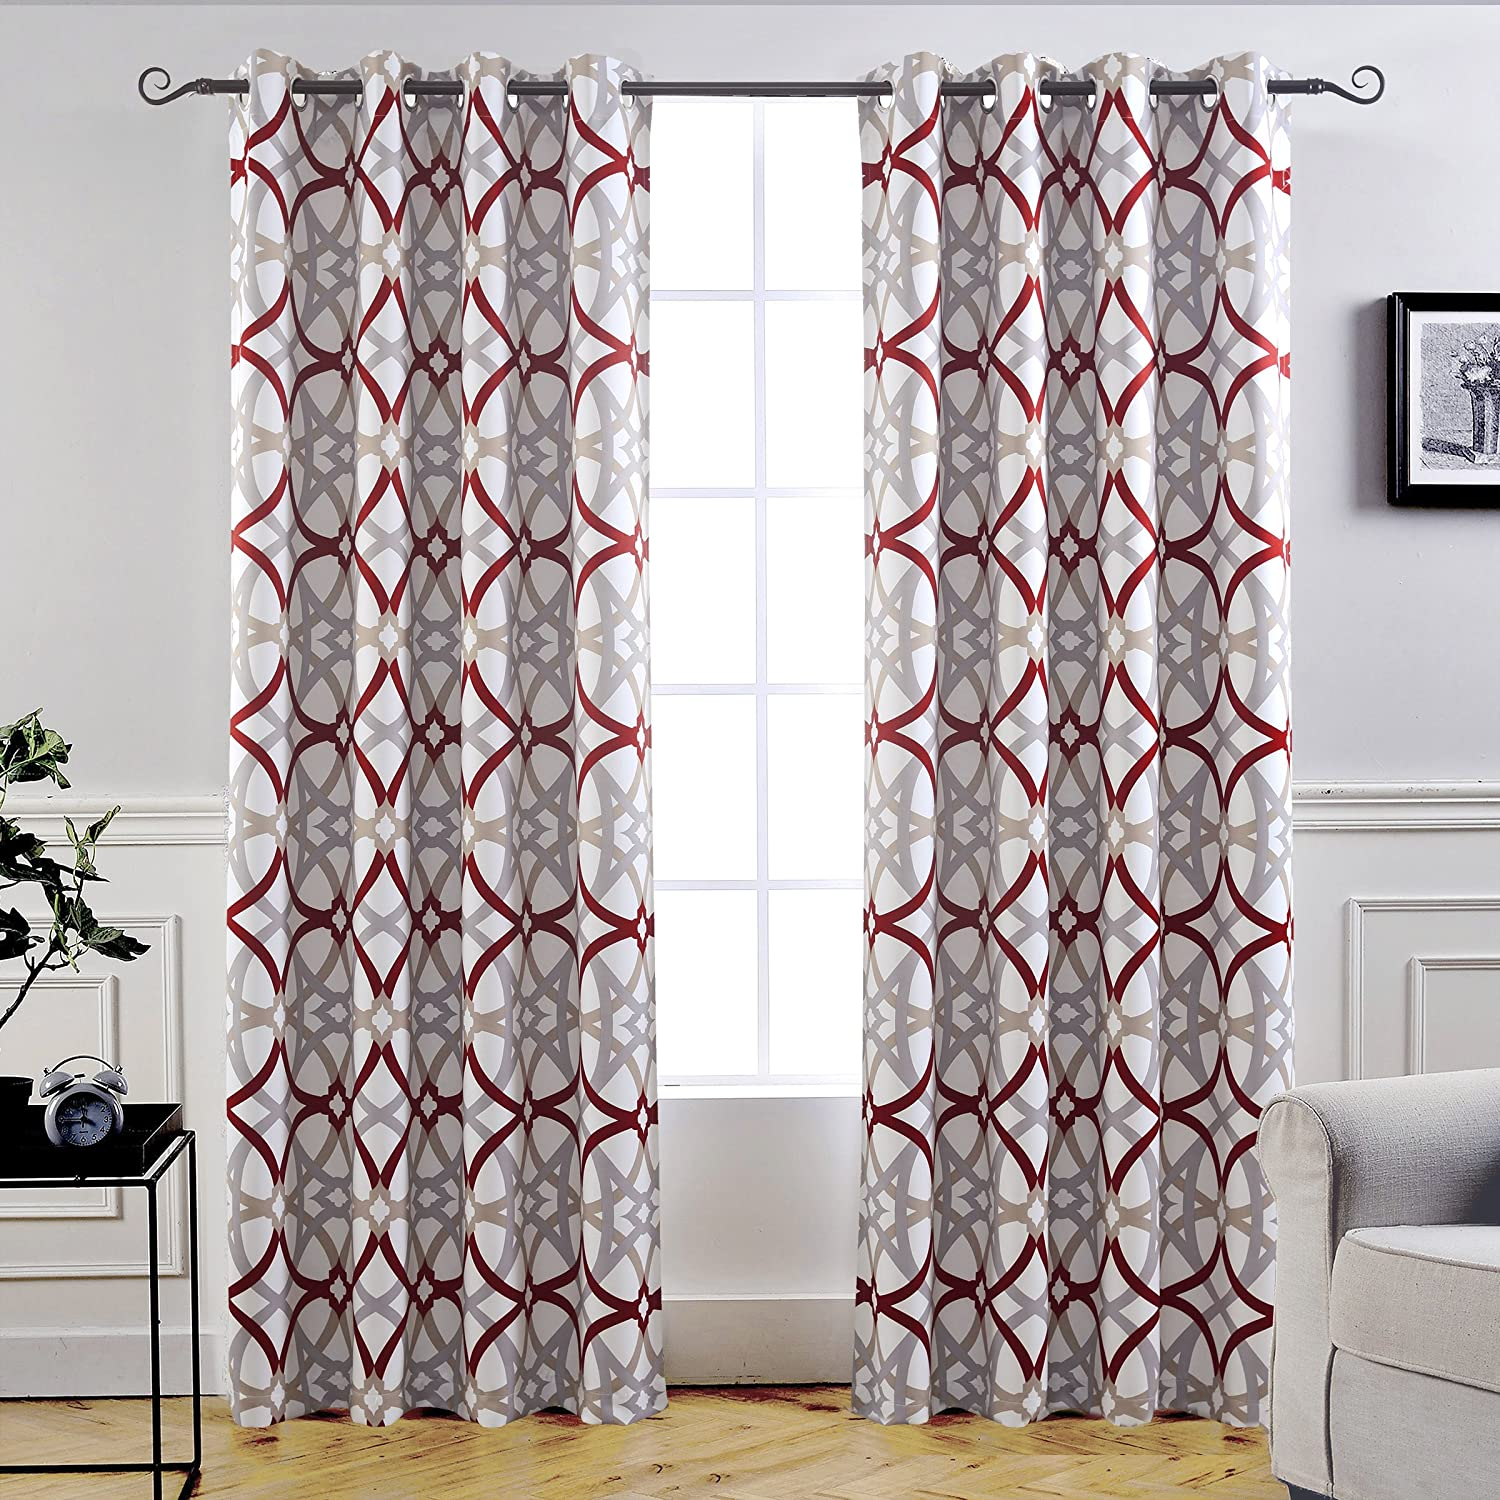 "DriftAway Alexander Thermal Blackout Grommet Unlined Window Curtains, Spiral Geo Trellis Pattern, Set of Two Panels, Each Size 52""x84"" (Red/Gray)"